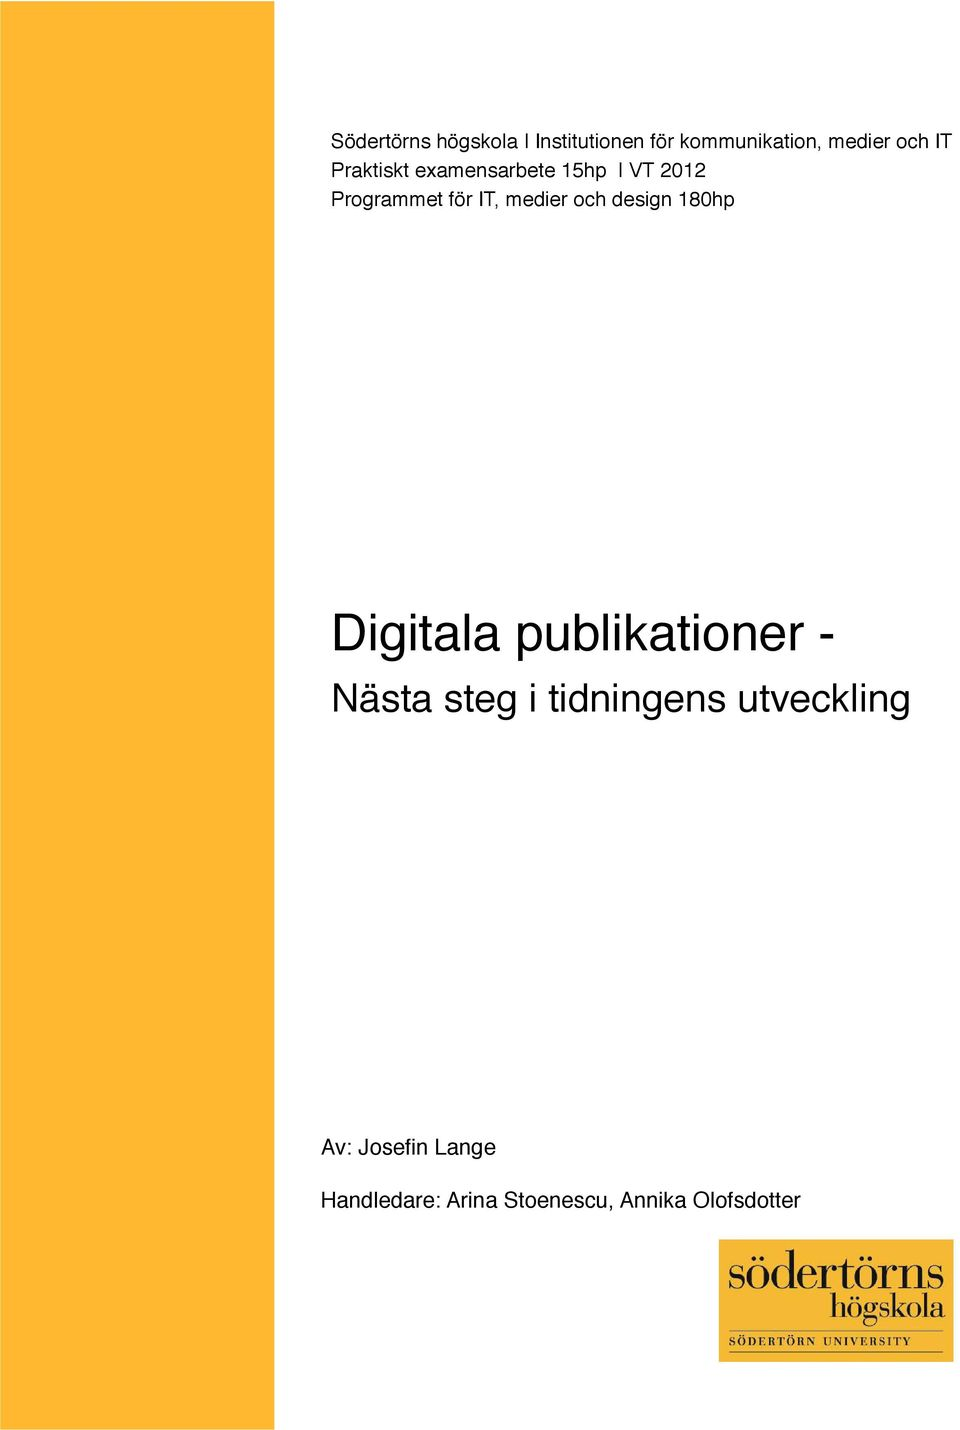 design 180hp Digitala publikationer - Nästa steg i tidningens